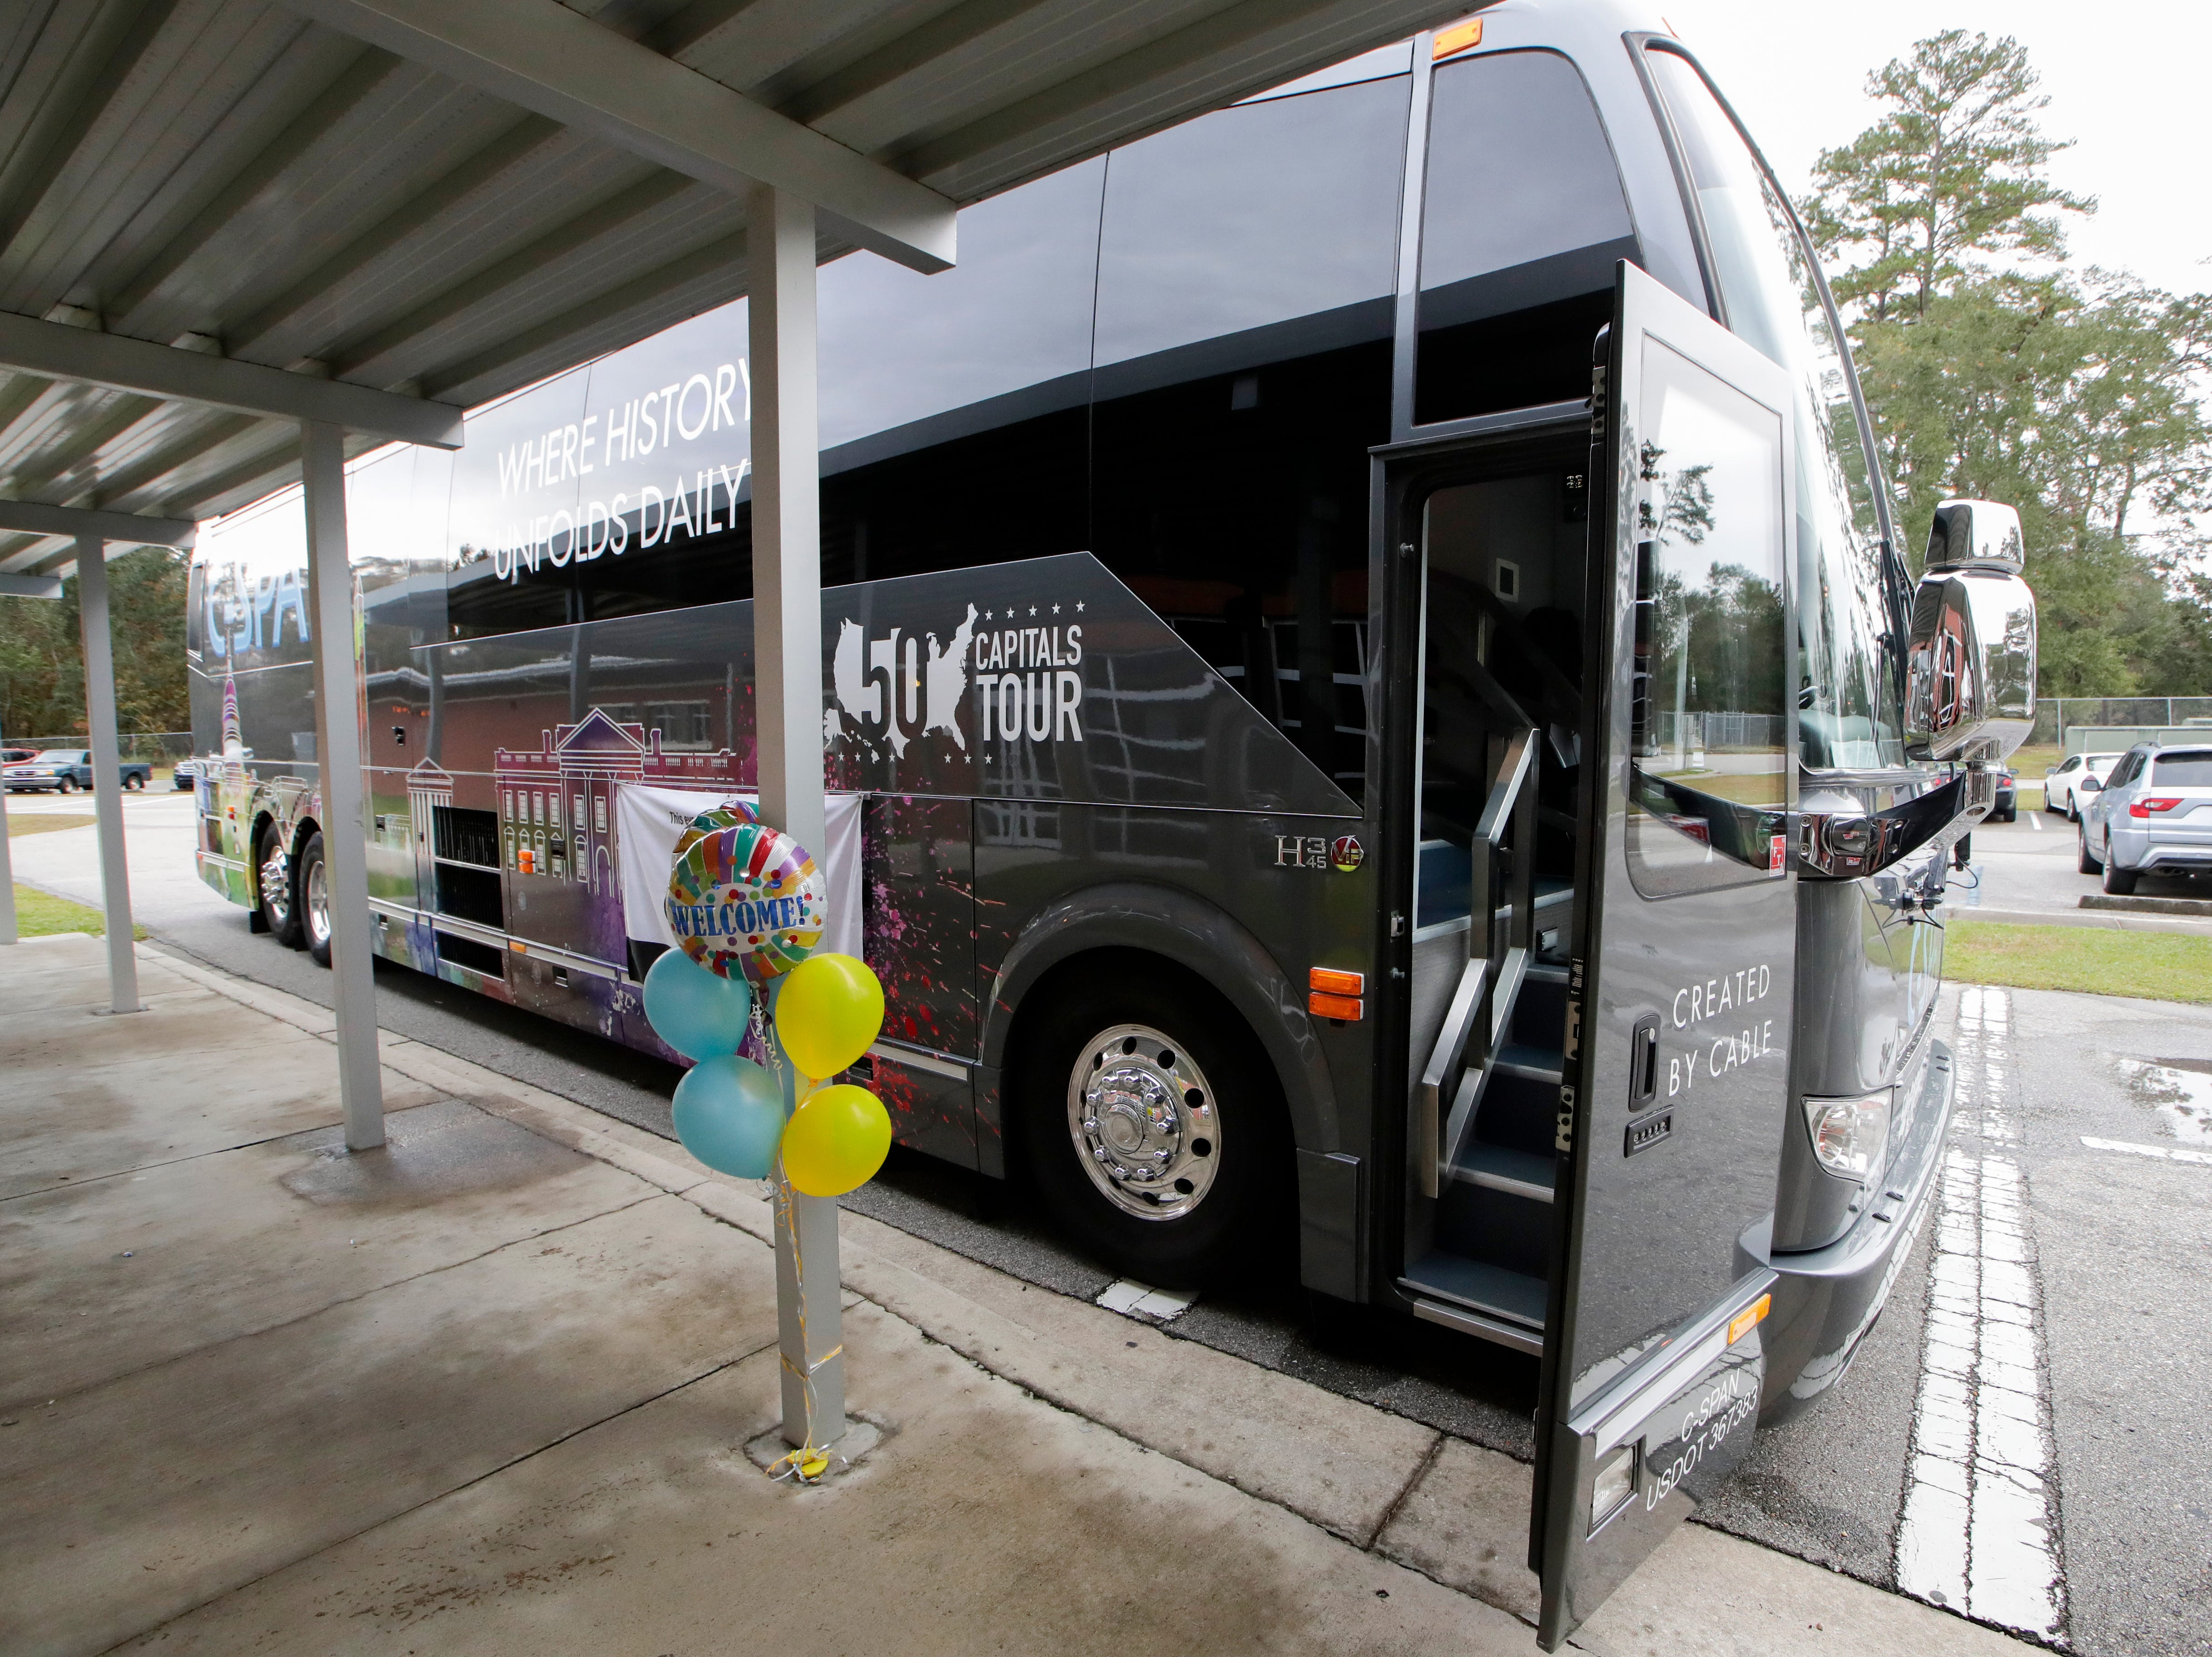 The C-SPAN bus stopped at the Ghazvini Learning Center Monday, Dec. 3, 2018, allowing students at Success Academy and Second Chance school to come aboard the bus and learn about C-SPAN Monday, Dec. 3, 2018.